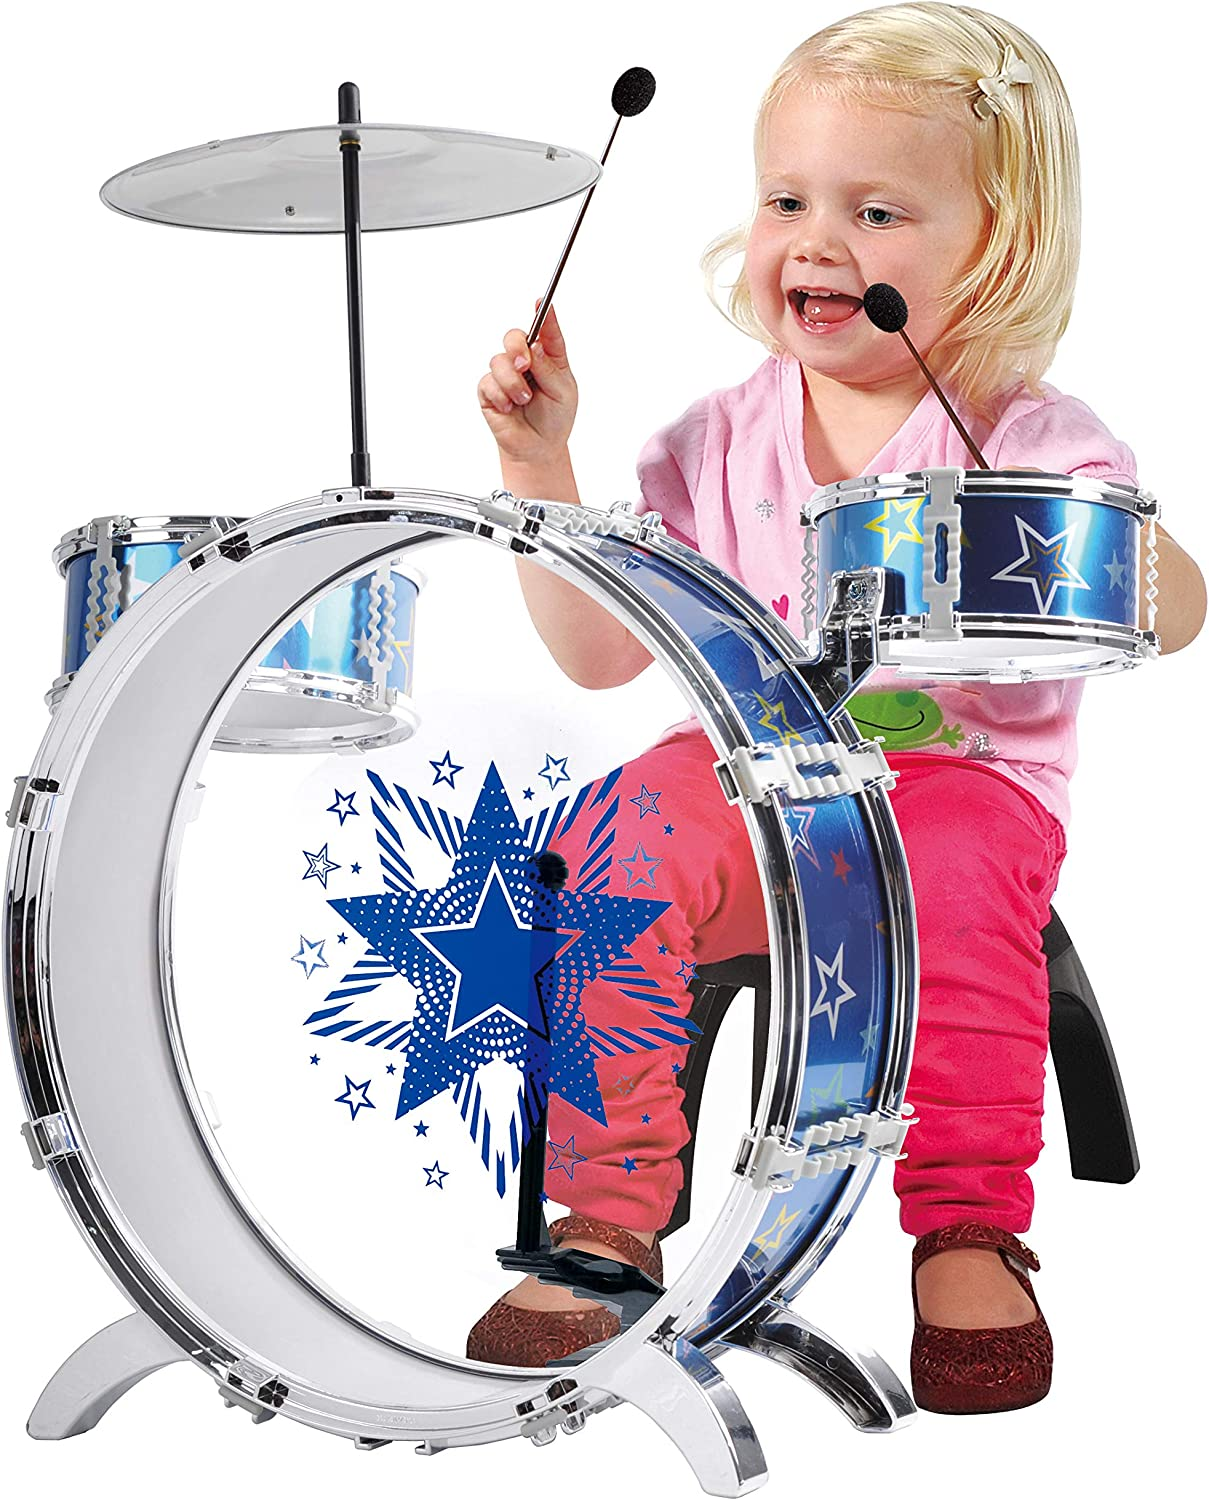 PlayGo Baby My First Drum Set Toddlers for Comfortable Max 79% OFF Play Toy New products world's highest quality popular